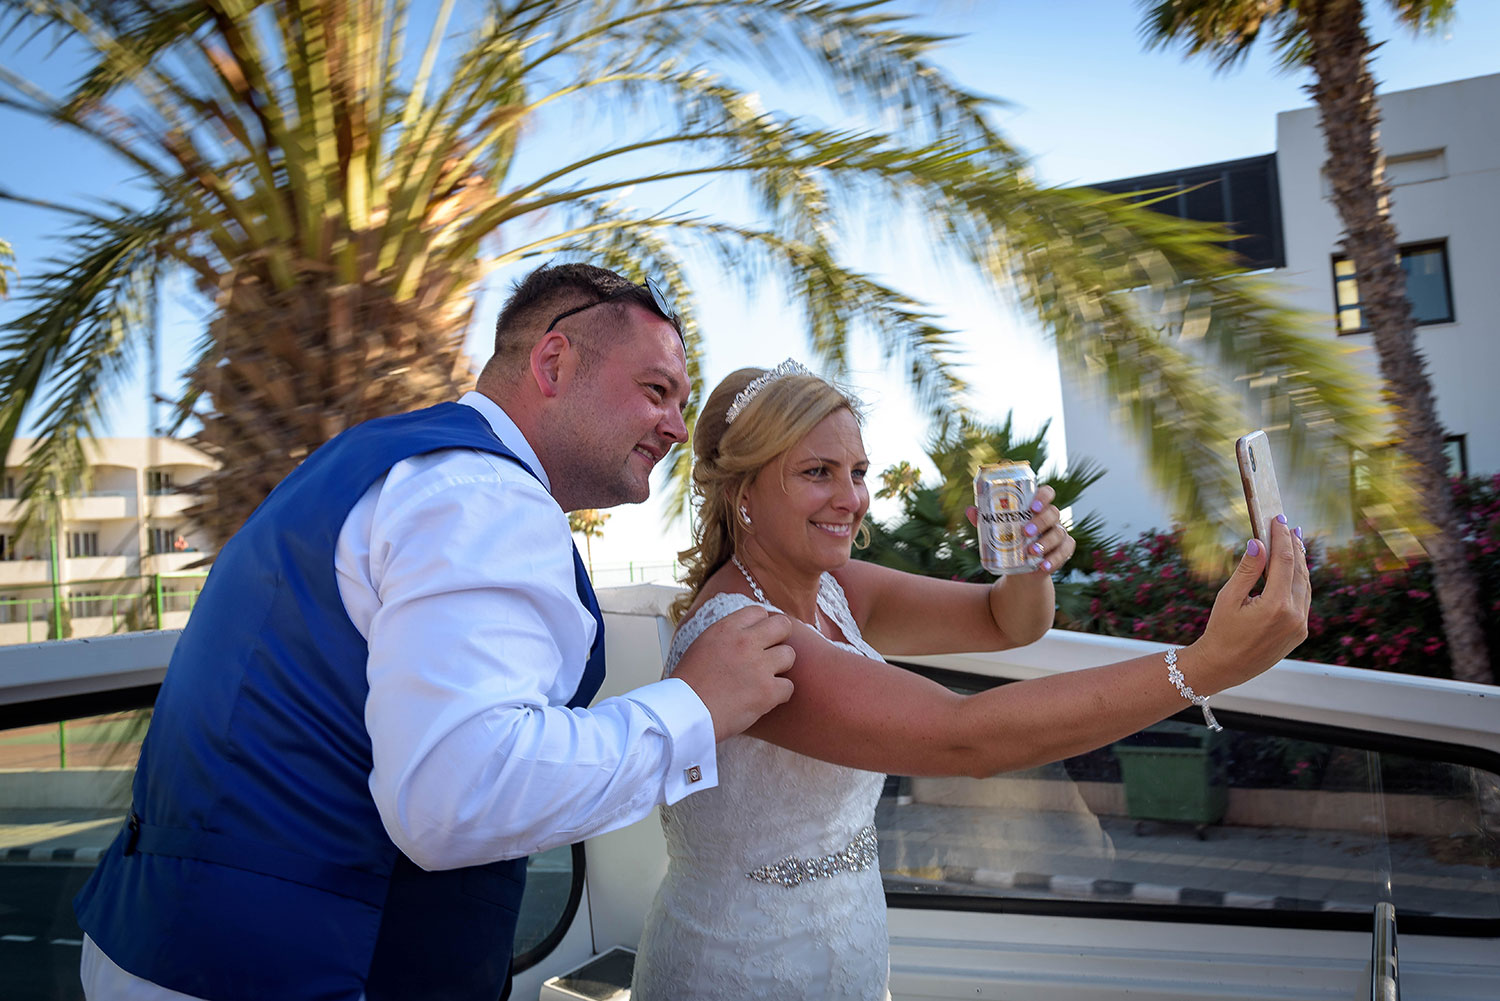 We got married in 1st of July in Paphos. James and the family were brilliant. They couldn't do enough for us, helped out with the wedding also in anyway they could. The photos and videos are absolutely amazing, would recommend James Walton and his family for your wedding. Absolutely amazing. - Sara Kelly 1 July 2019